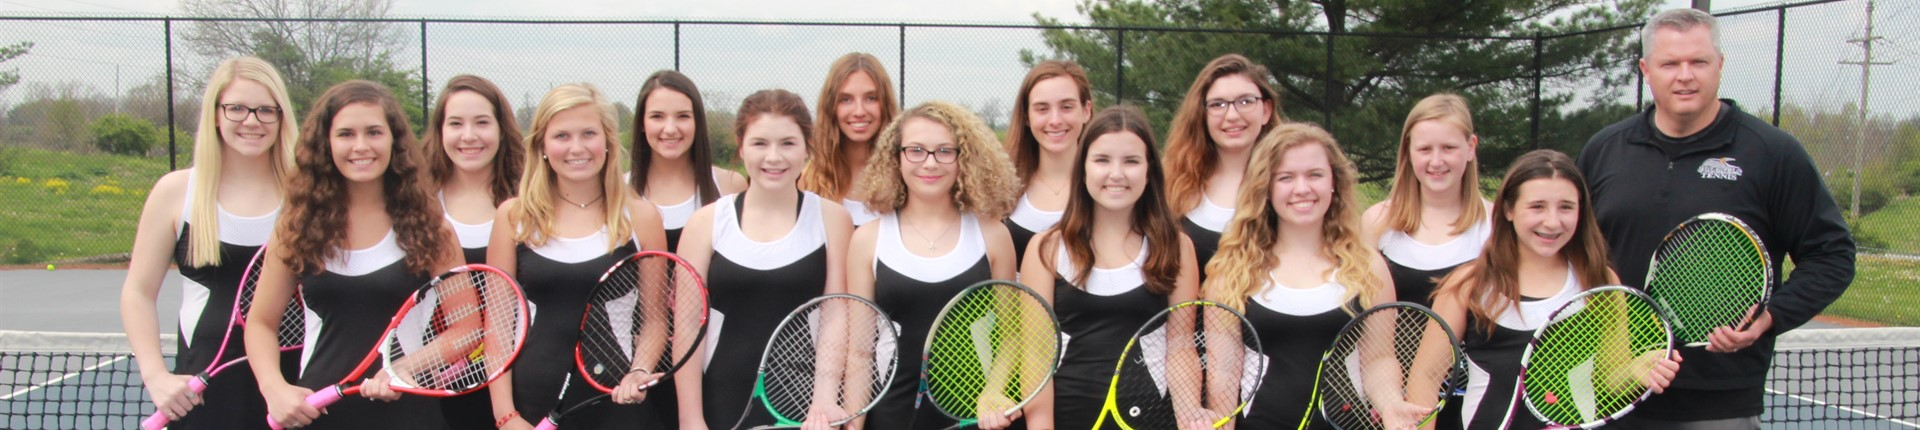 Group photo of Bourbon County's girl tennis team.